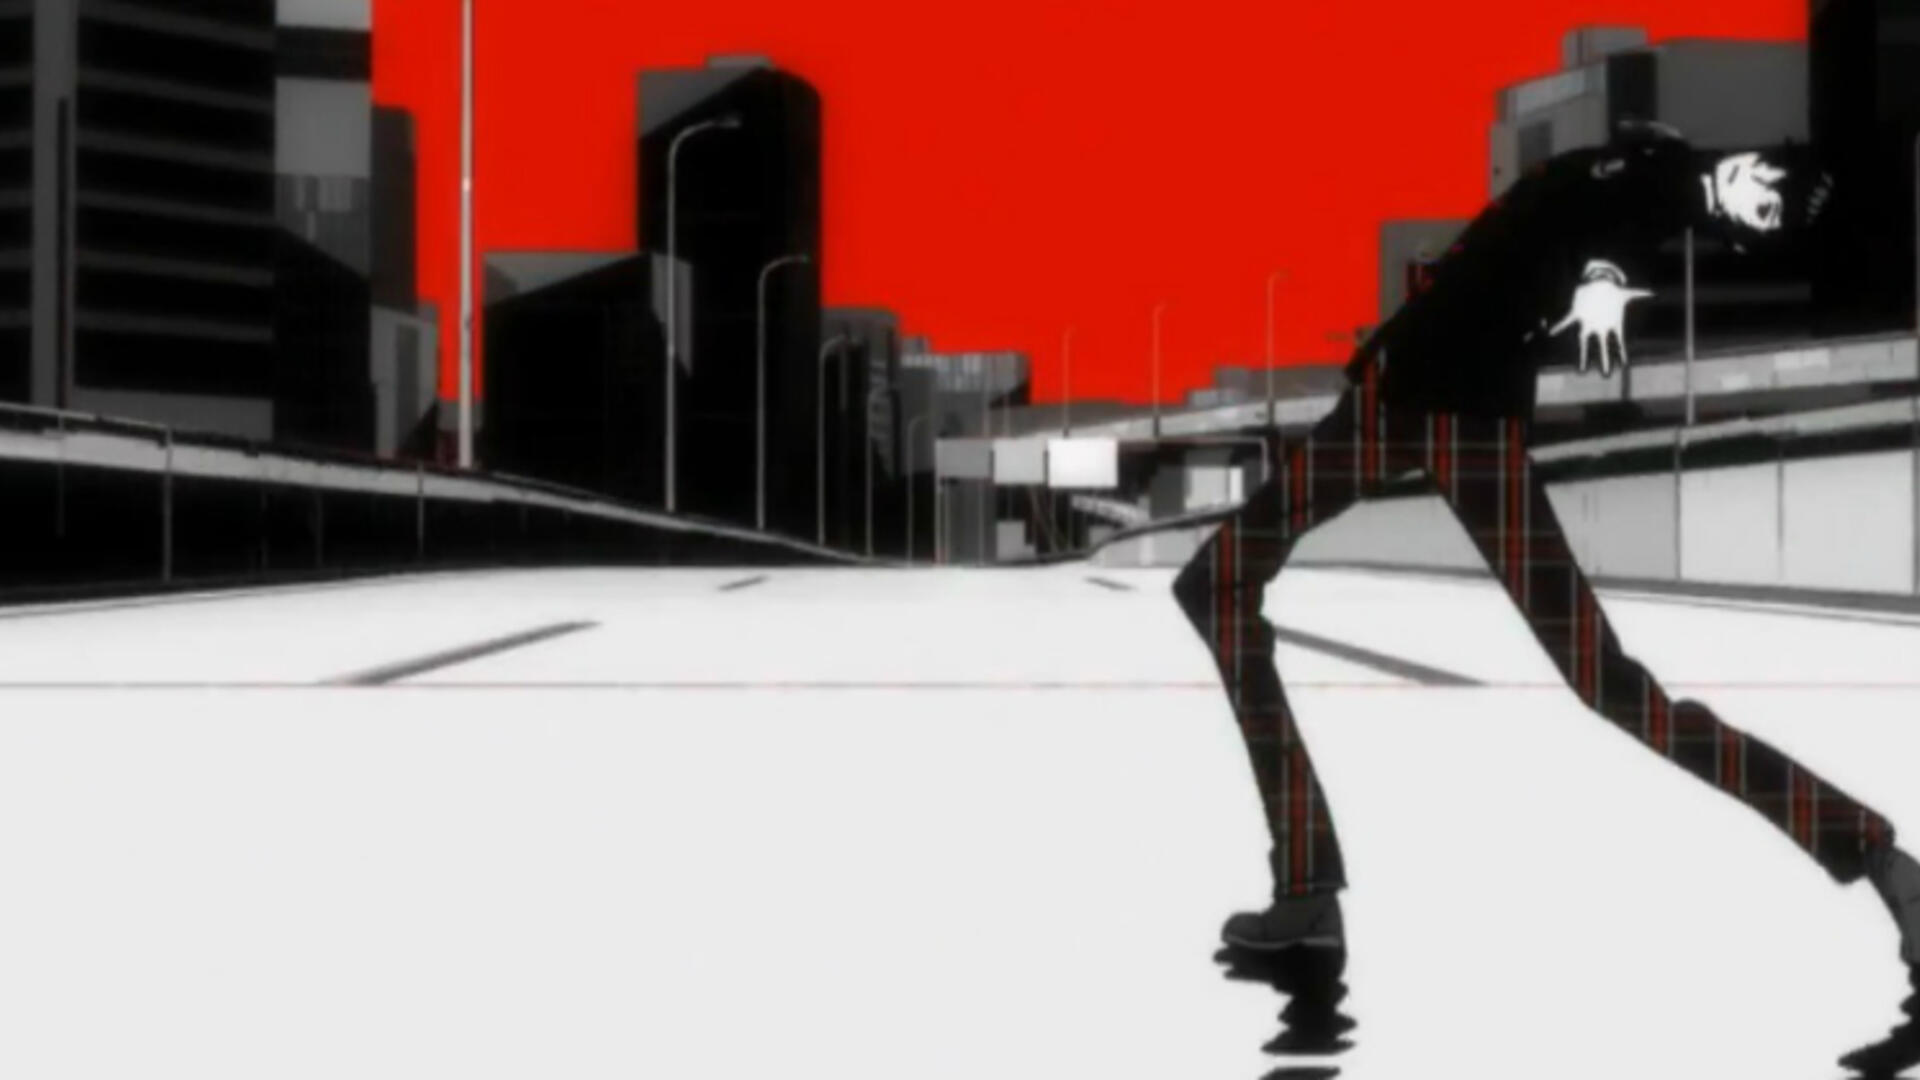 Some Interesting Domains for Persona 5 Spin-Offs Have Popped up on the Web